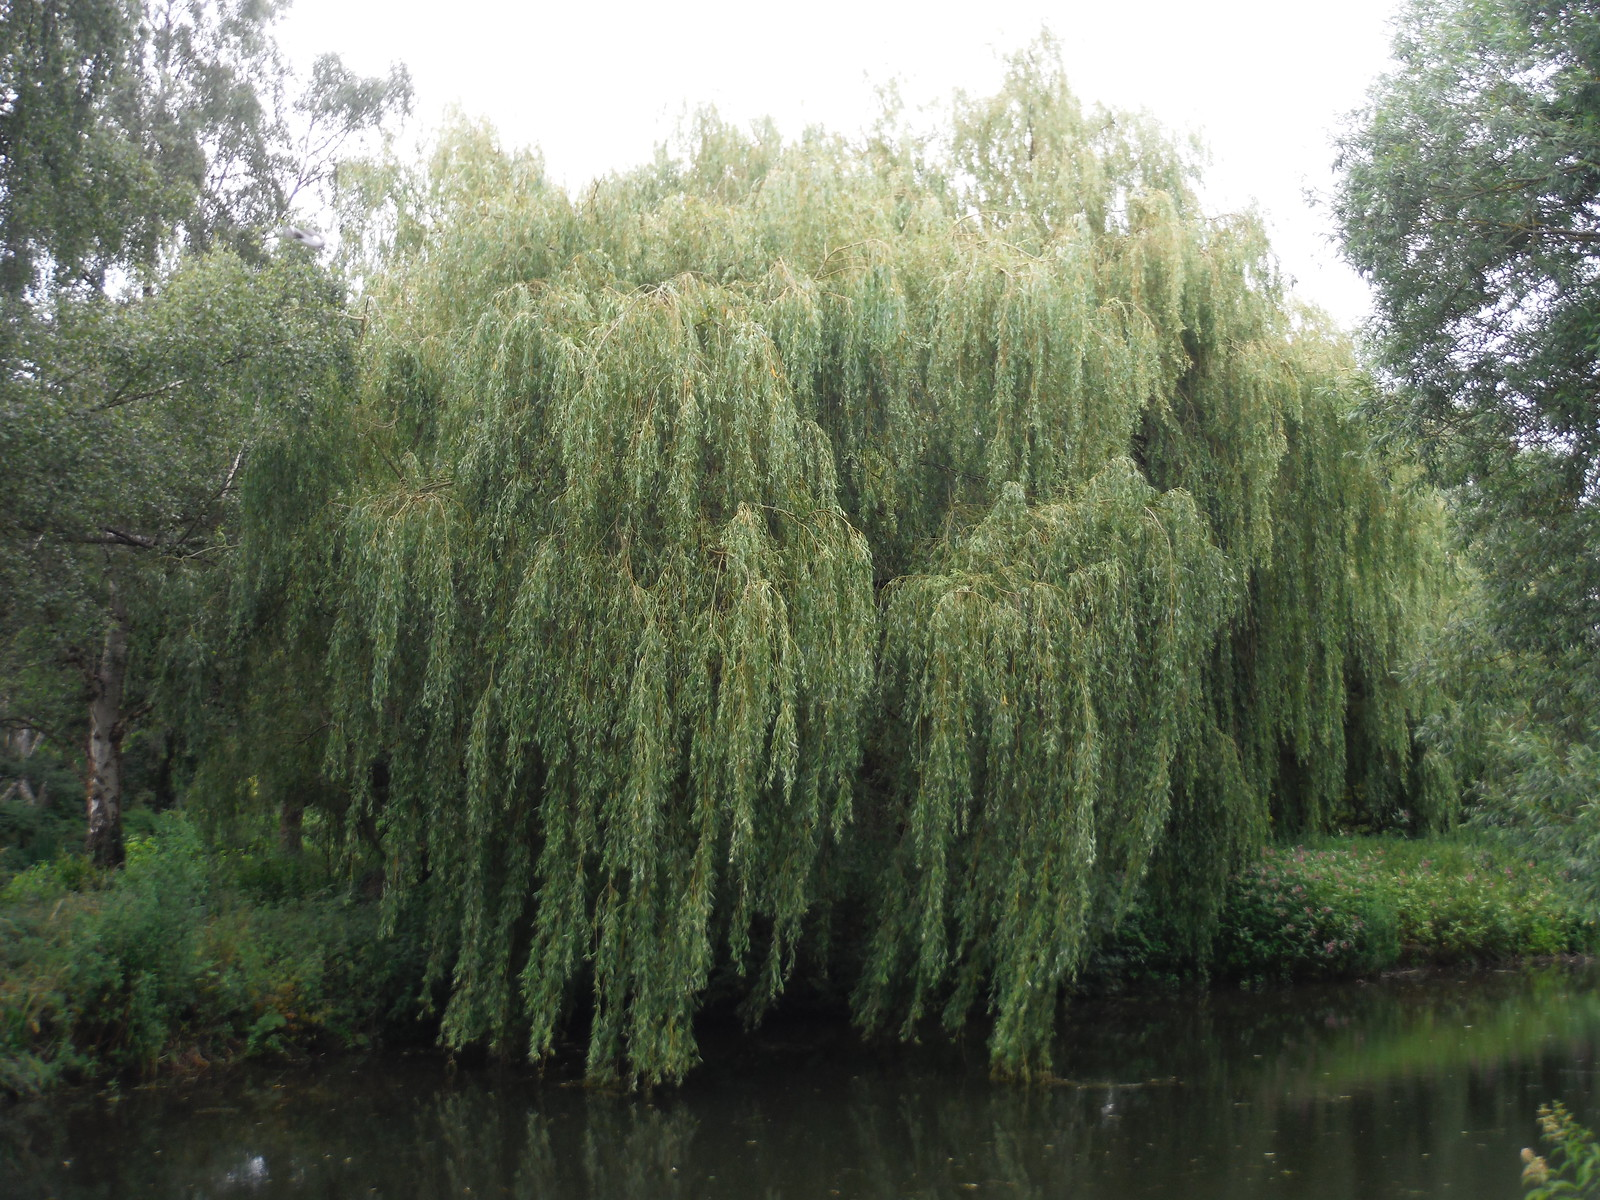 Willow, Twyford Bury, Stort Navigation SWC Walk 210 - Sawbridgeworth to Bishop's Stortfort (via Henry Moore Foundation)